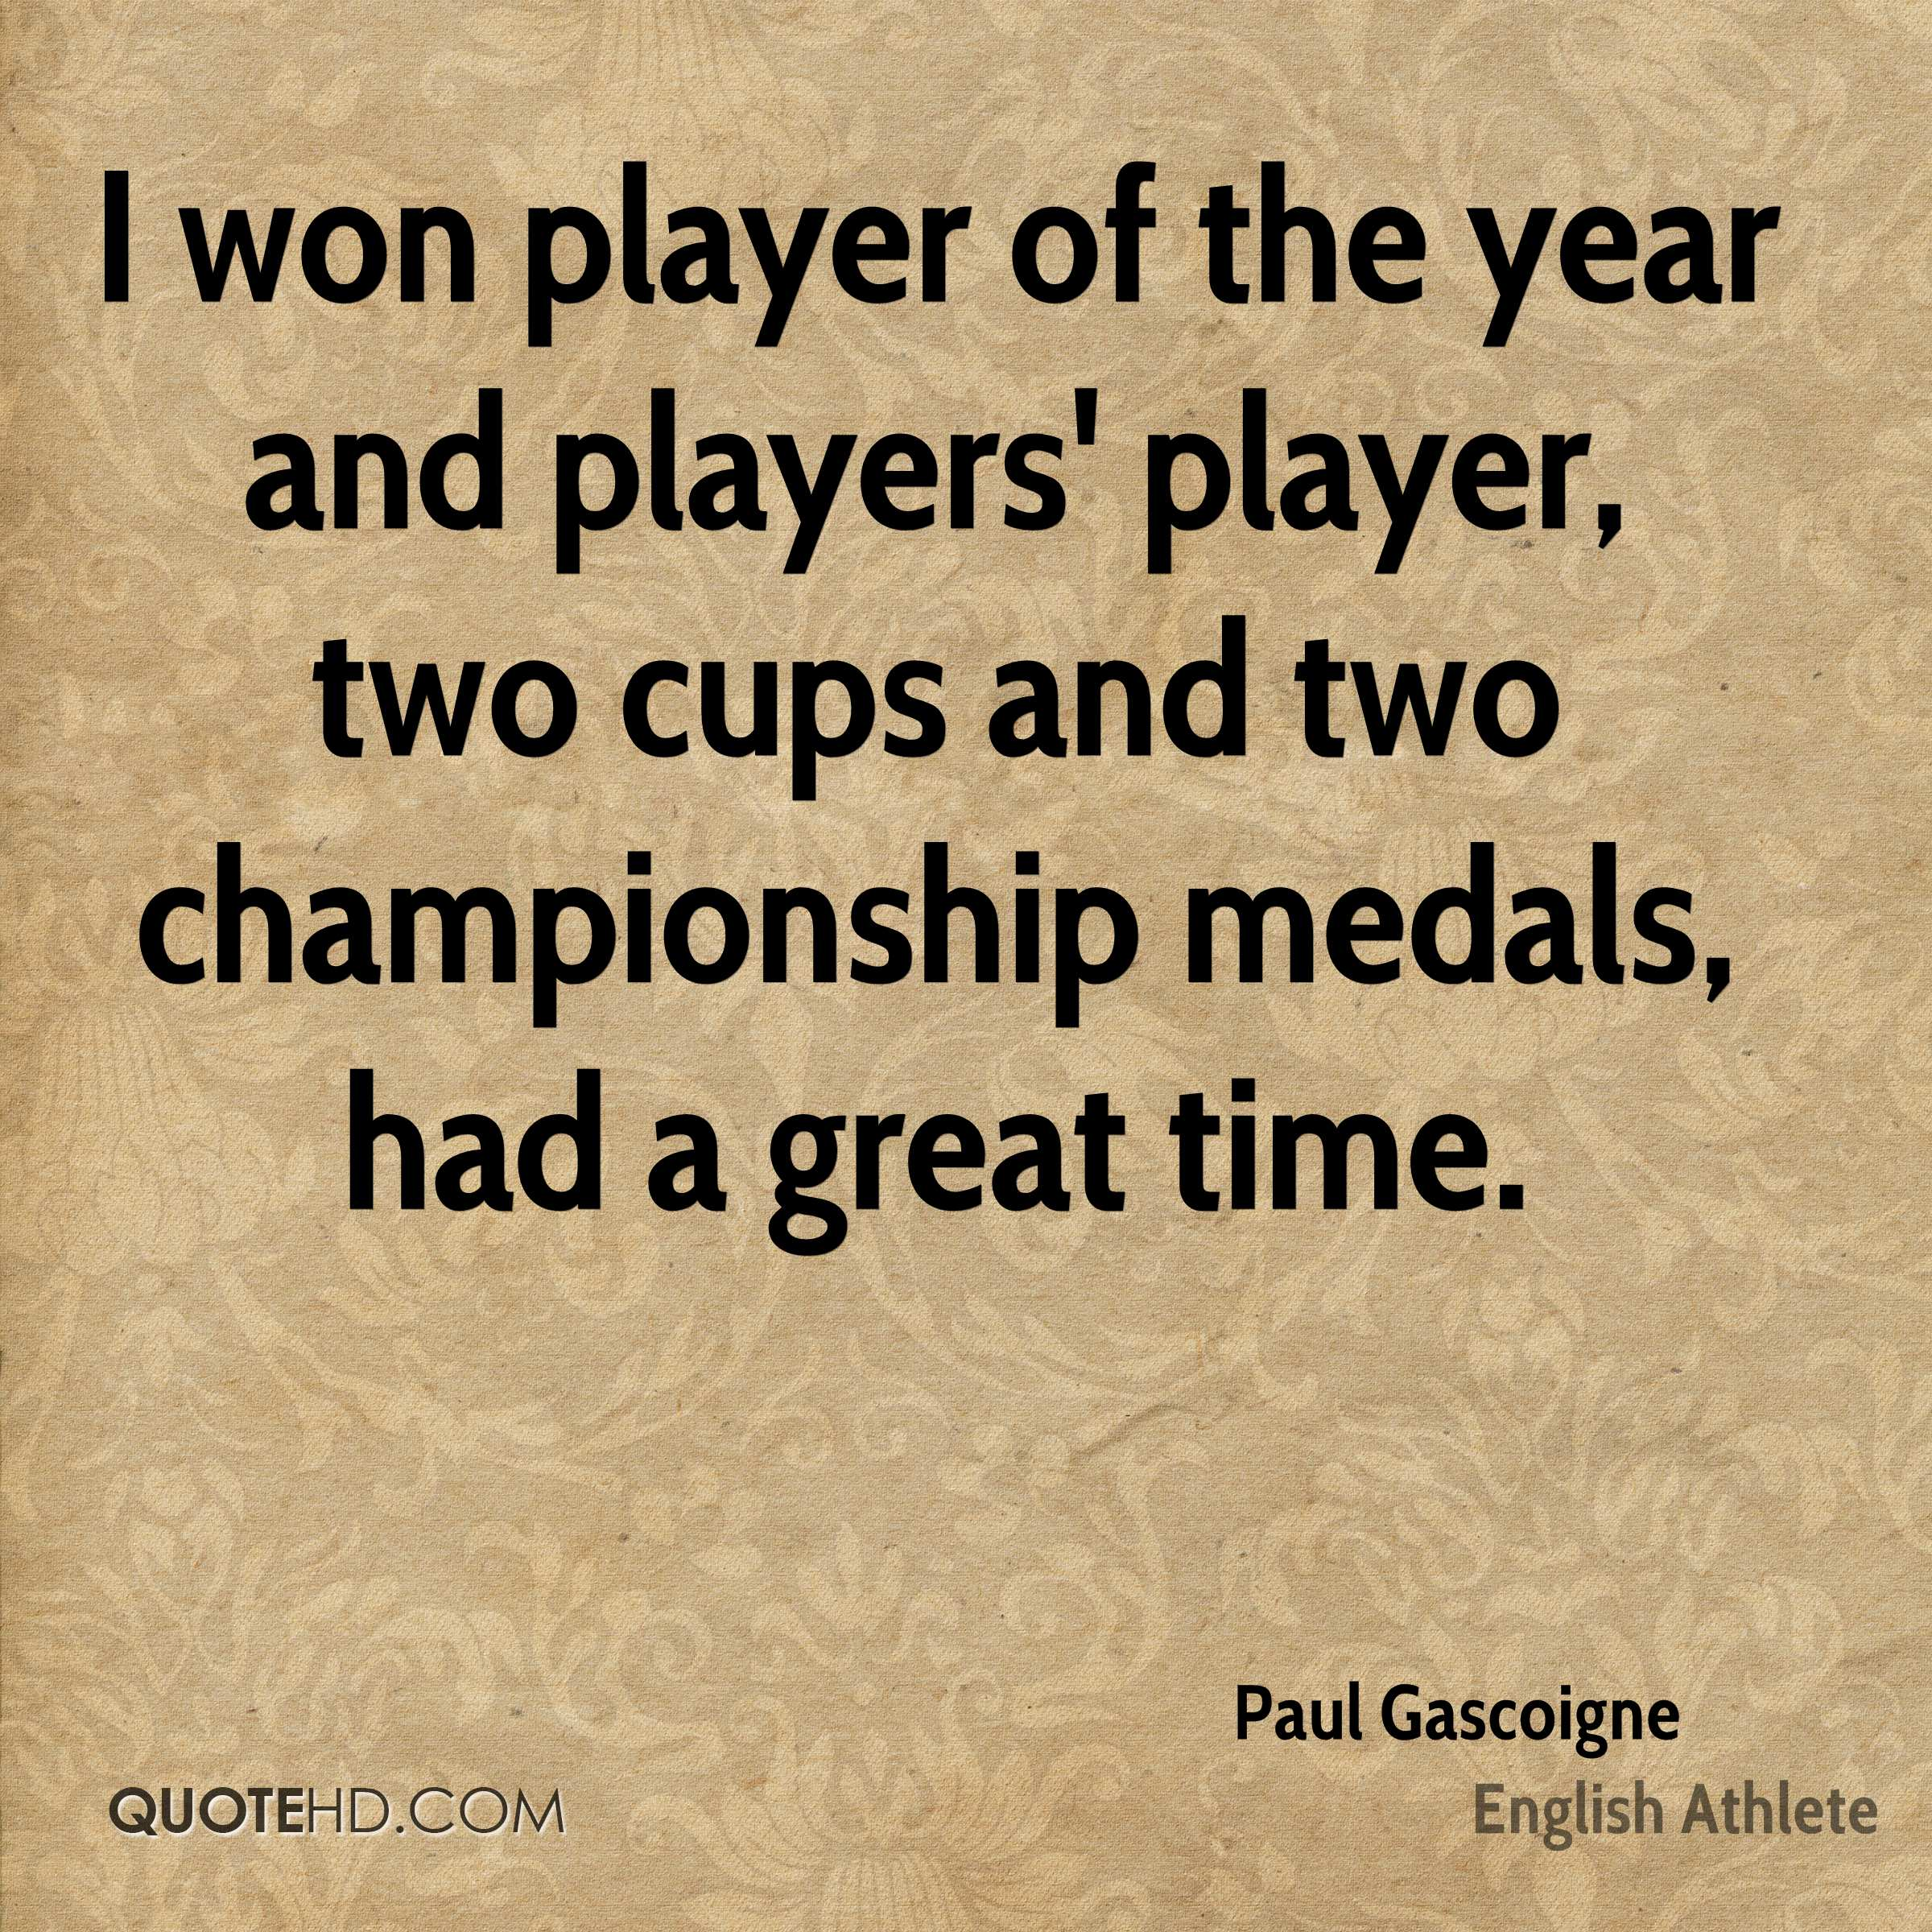 I won player of the year and players' player, two cups and two championship medals, had a great time.